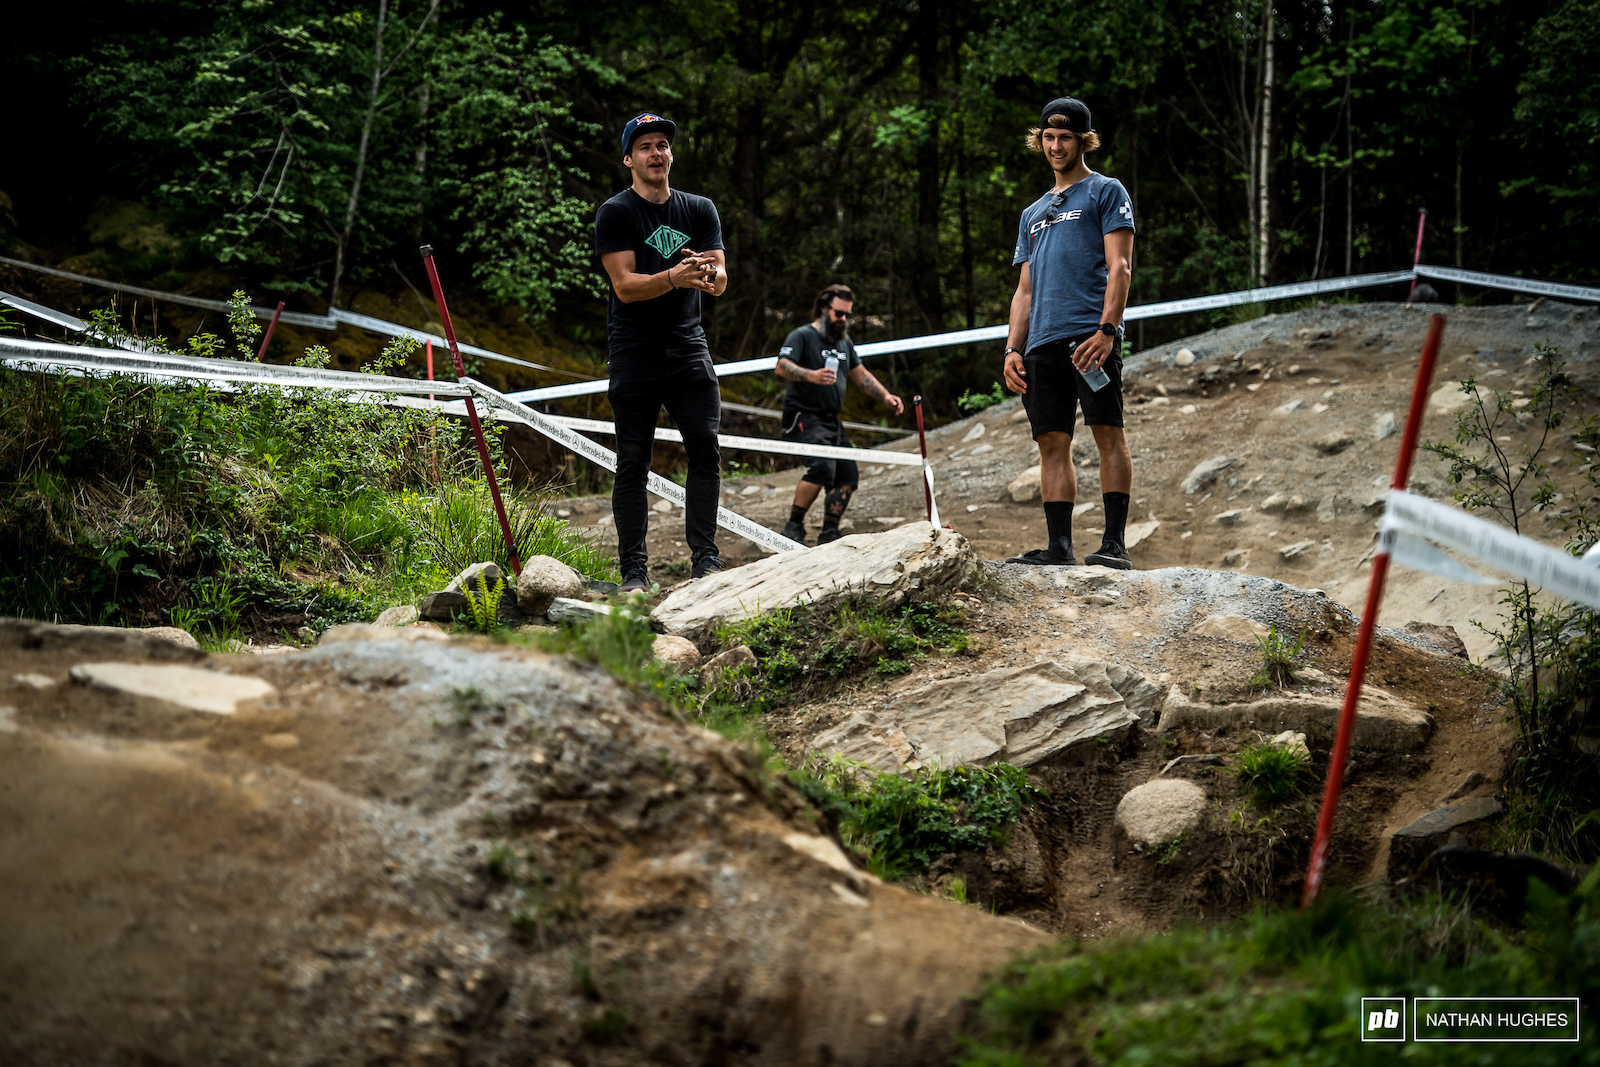 Enduro boss Greg Callaghan assisting Max Hartenstern s hike in the forest.